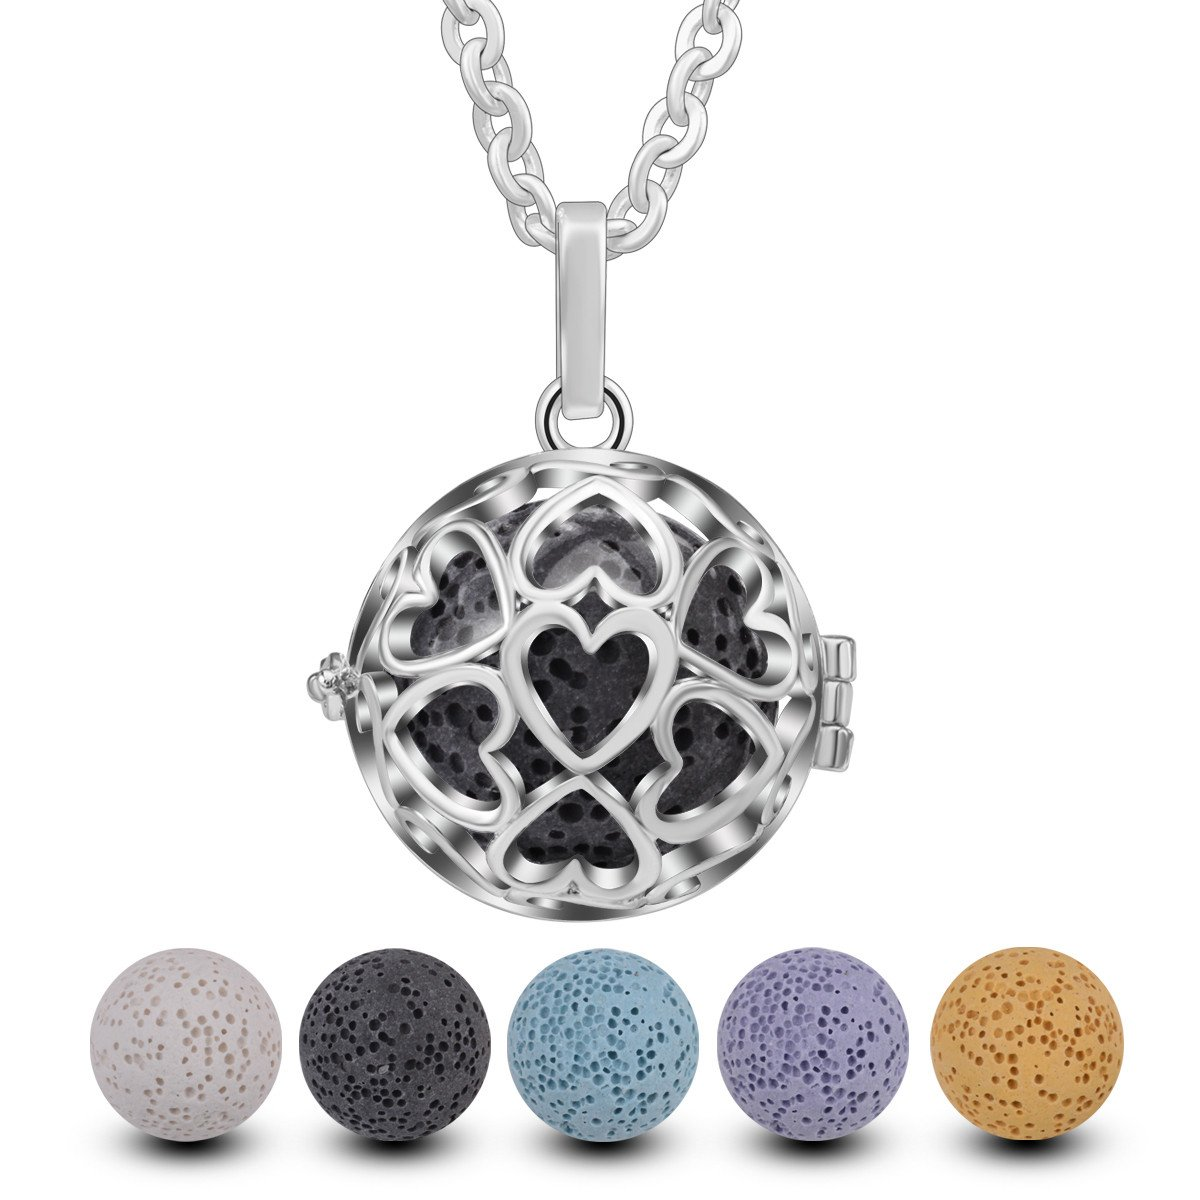 EUDORA Fashion Volcanic Rock Beads Locket Pendant Essential Oil Diffuser Necklace fit for Youngliving